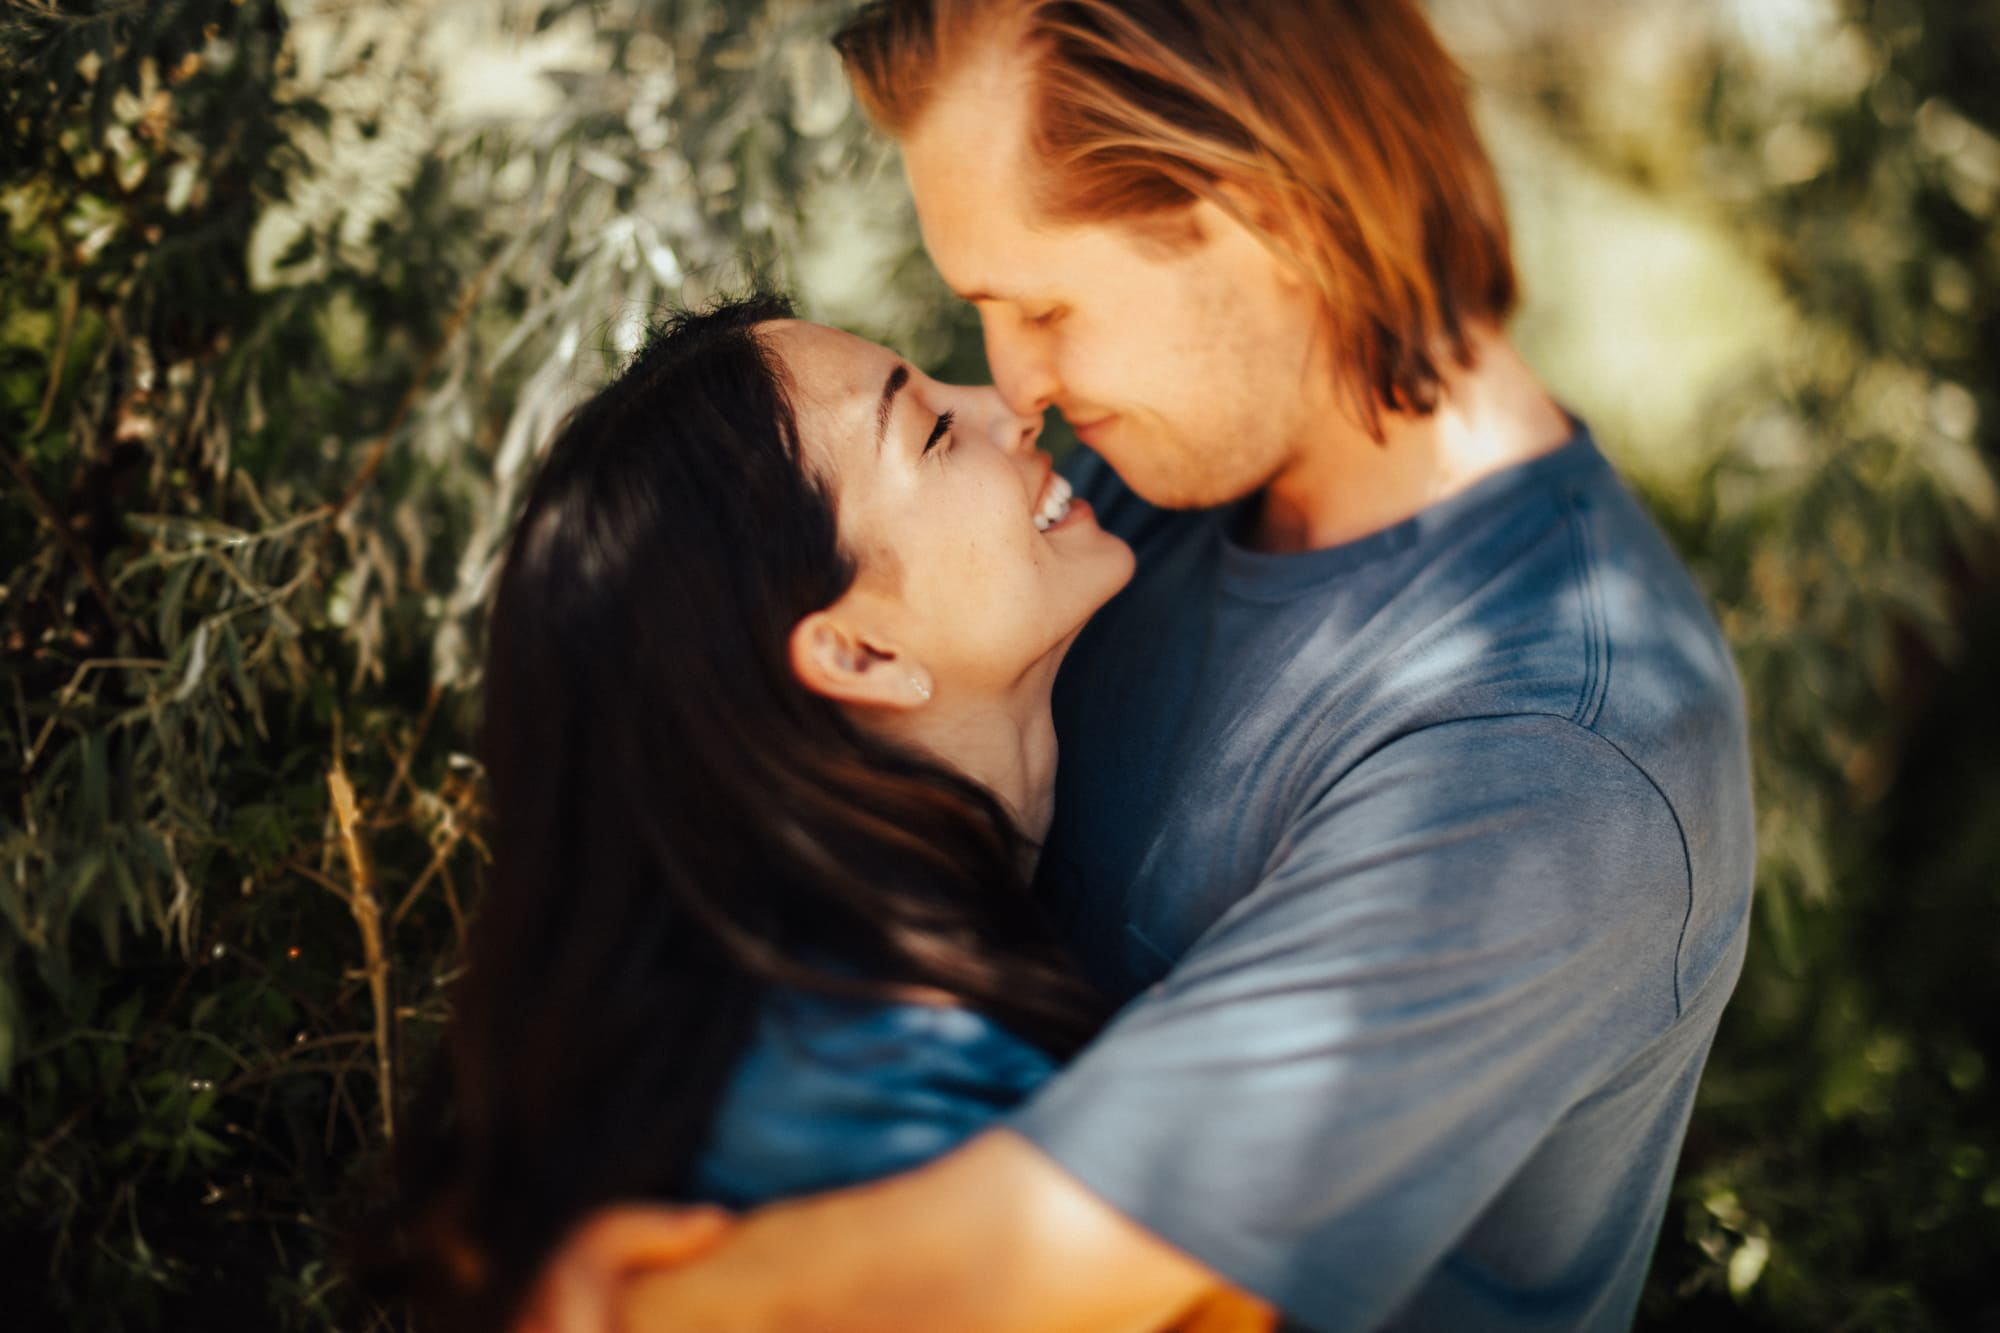 Couple smiling together for intimate outdoor photoshoot